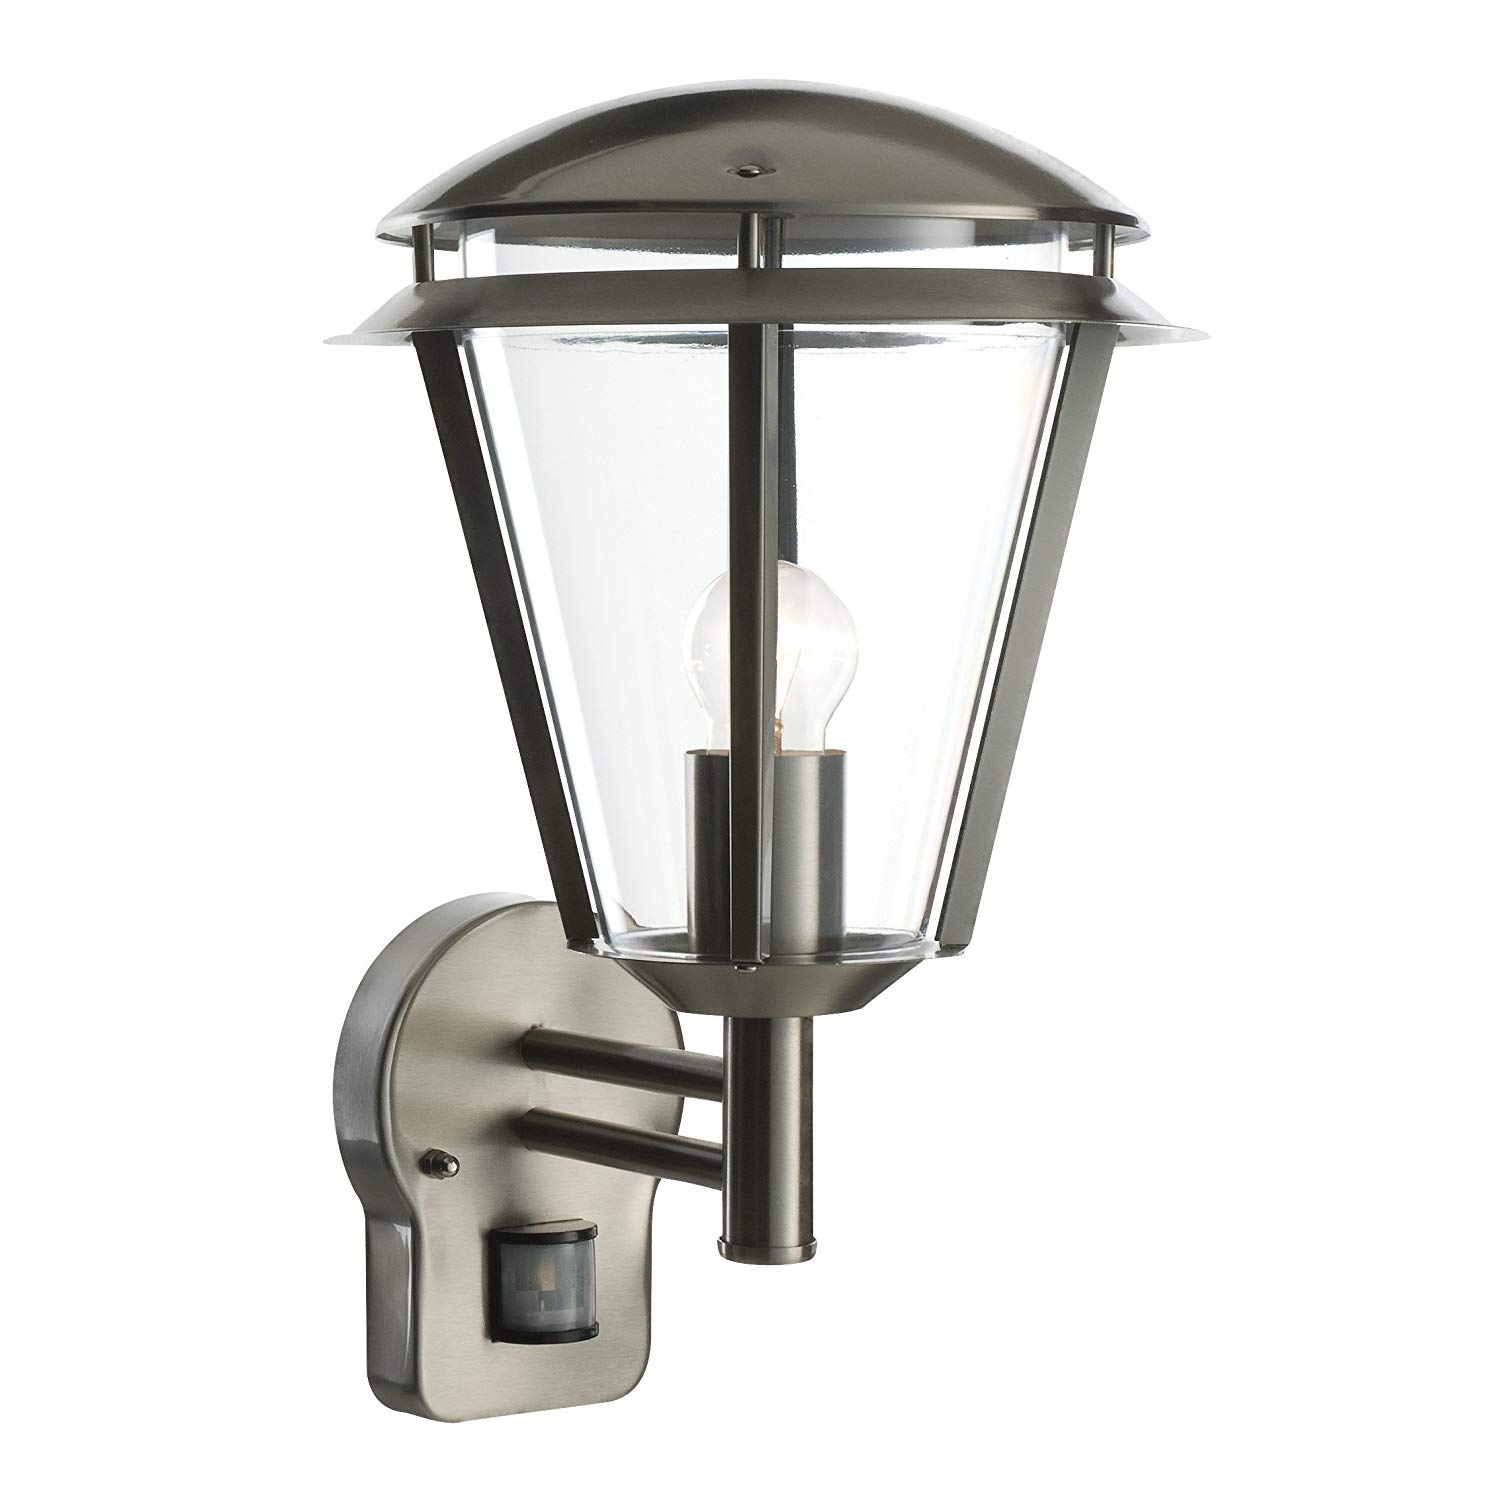 Saxby Inova Stainless Steel Outdoor Wall Light With Sensor Ip44 60W for Outdoor Pir Lanterns (Image 19 of 20)